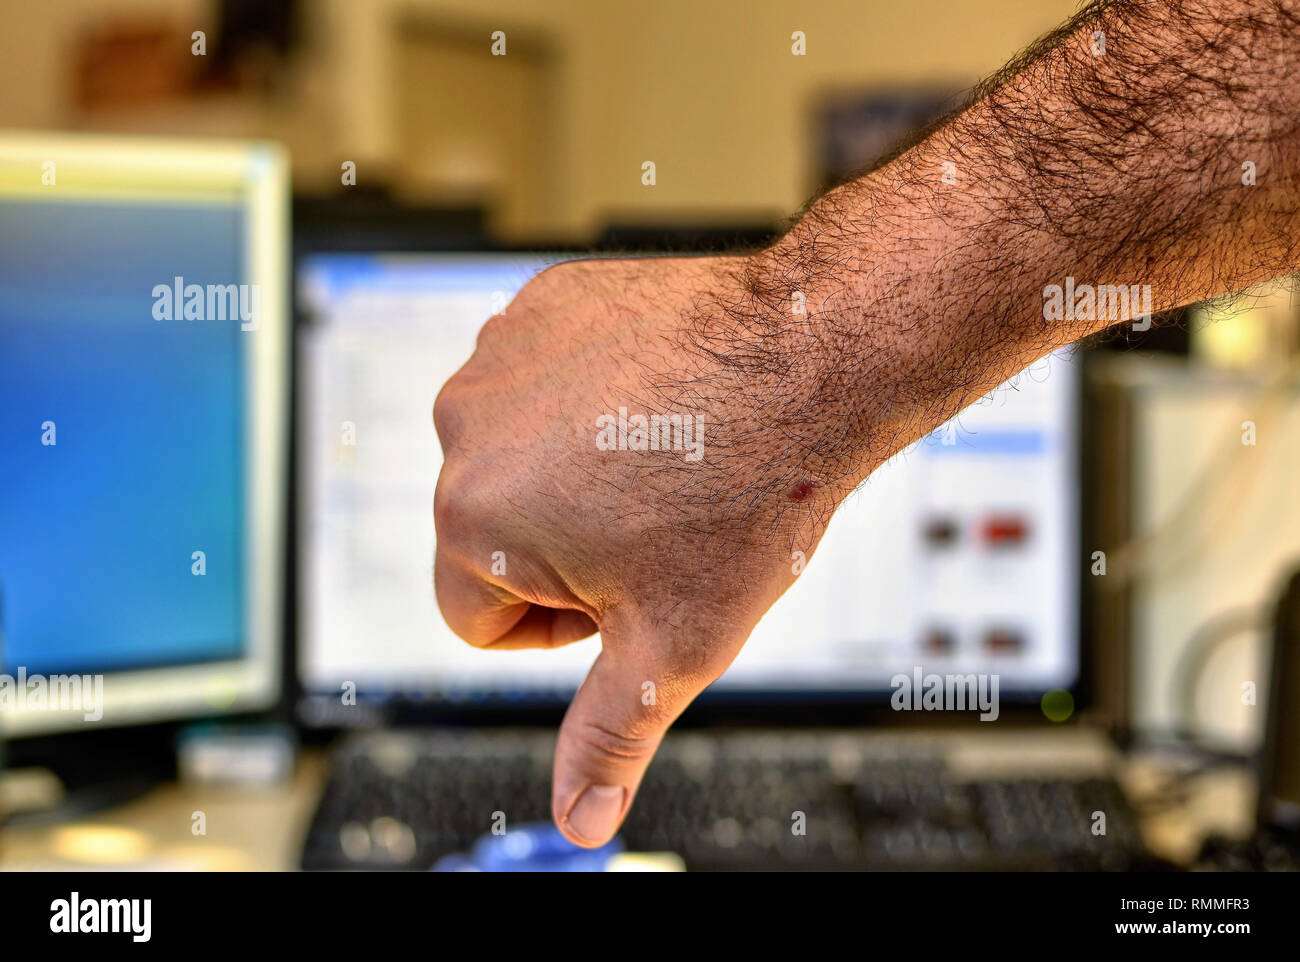 Male hand of Caucasian man makes thumbs down gesture. Indistinguishable blurred background of an office. - Stock Image